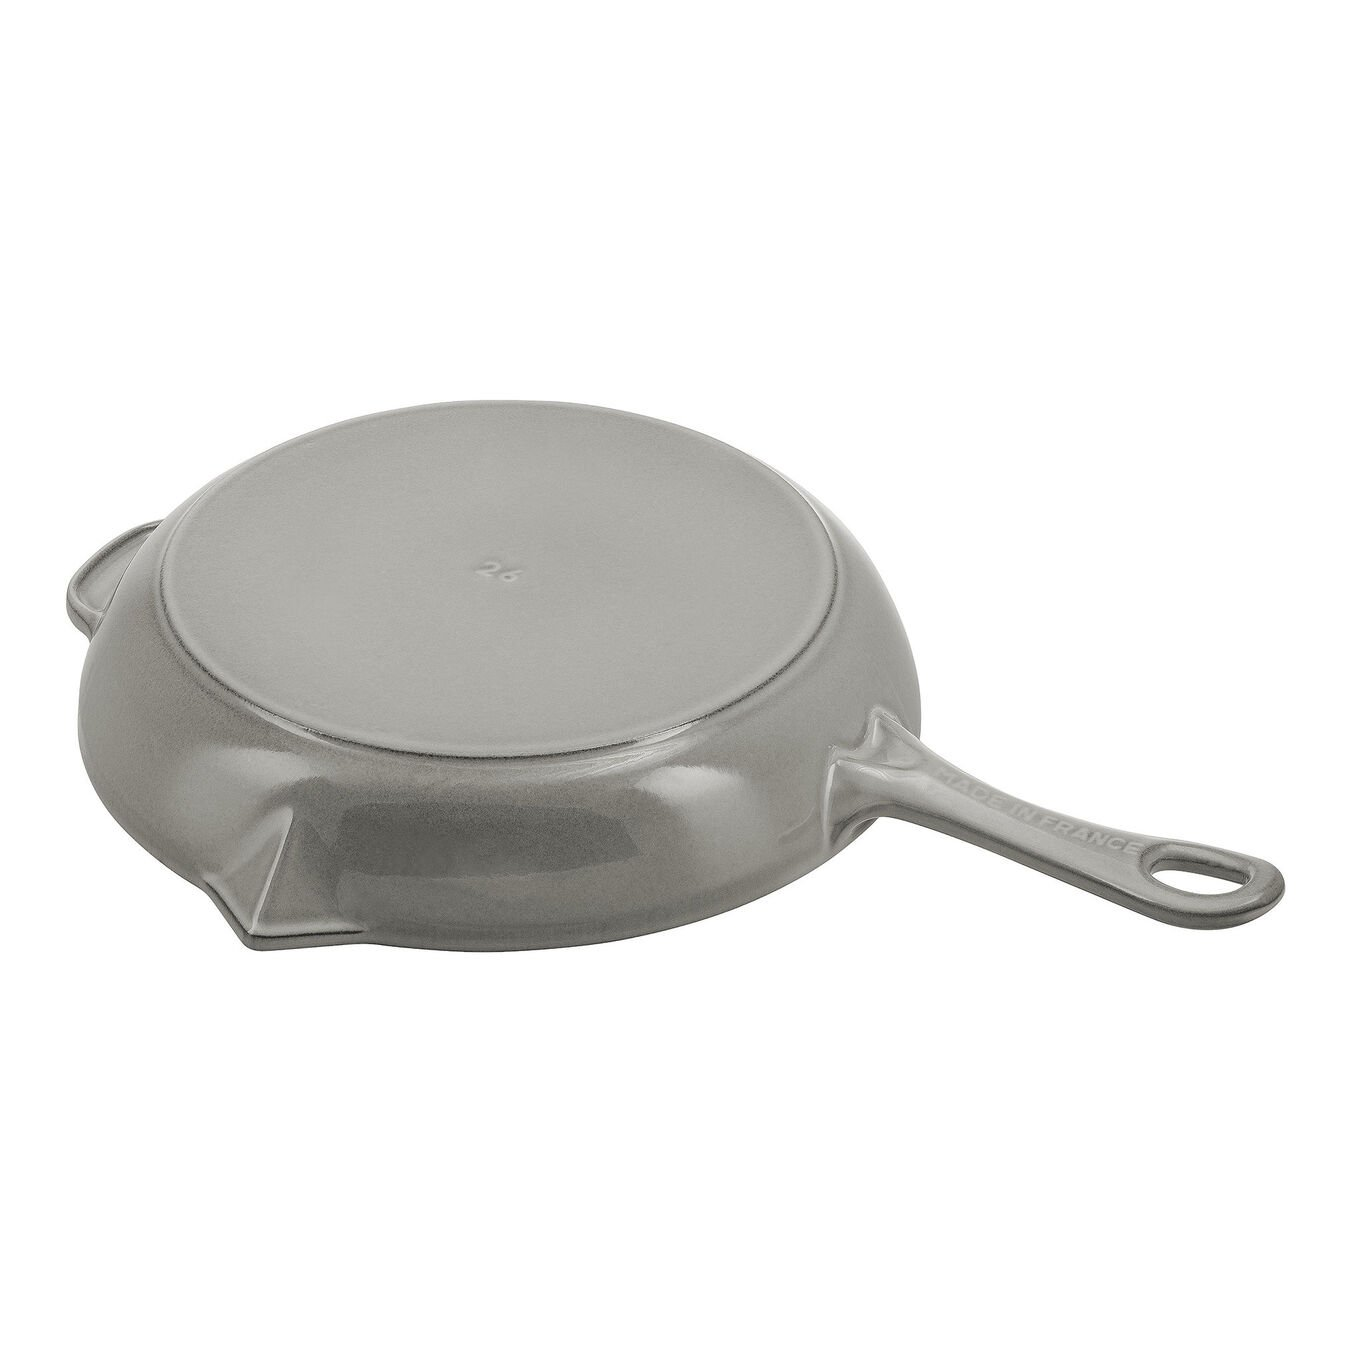 26 cm / 10 inch Cast iron Frying pan with pouring spout, graphite-grey,,large 3